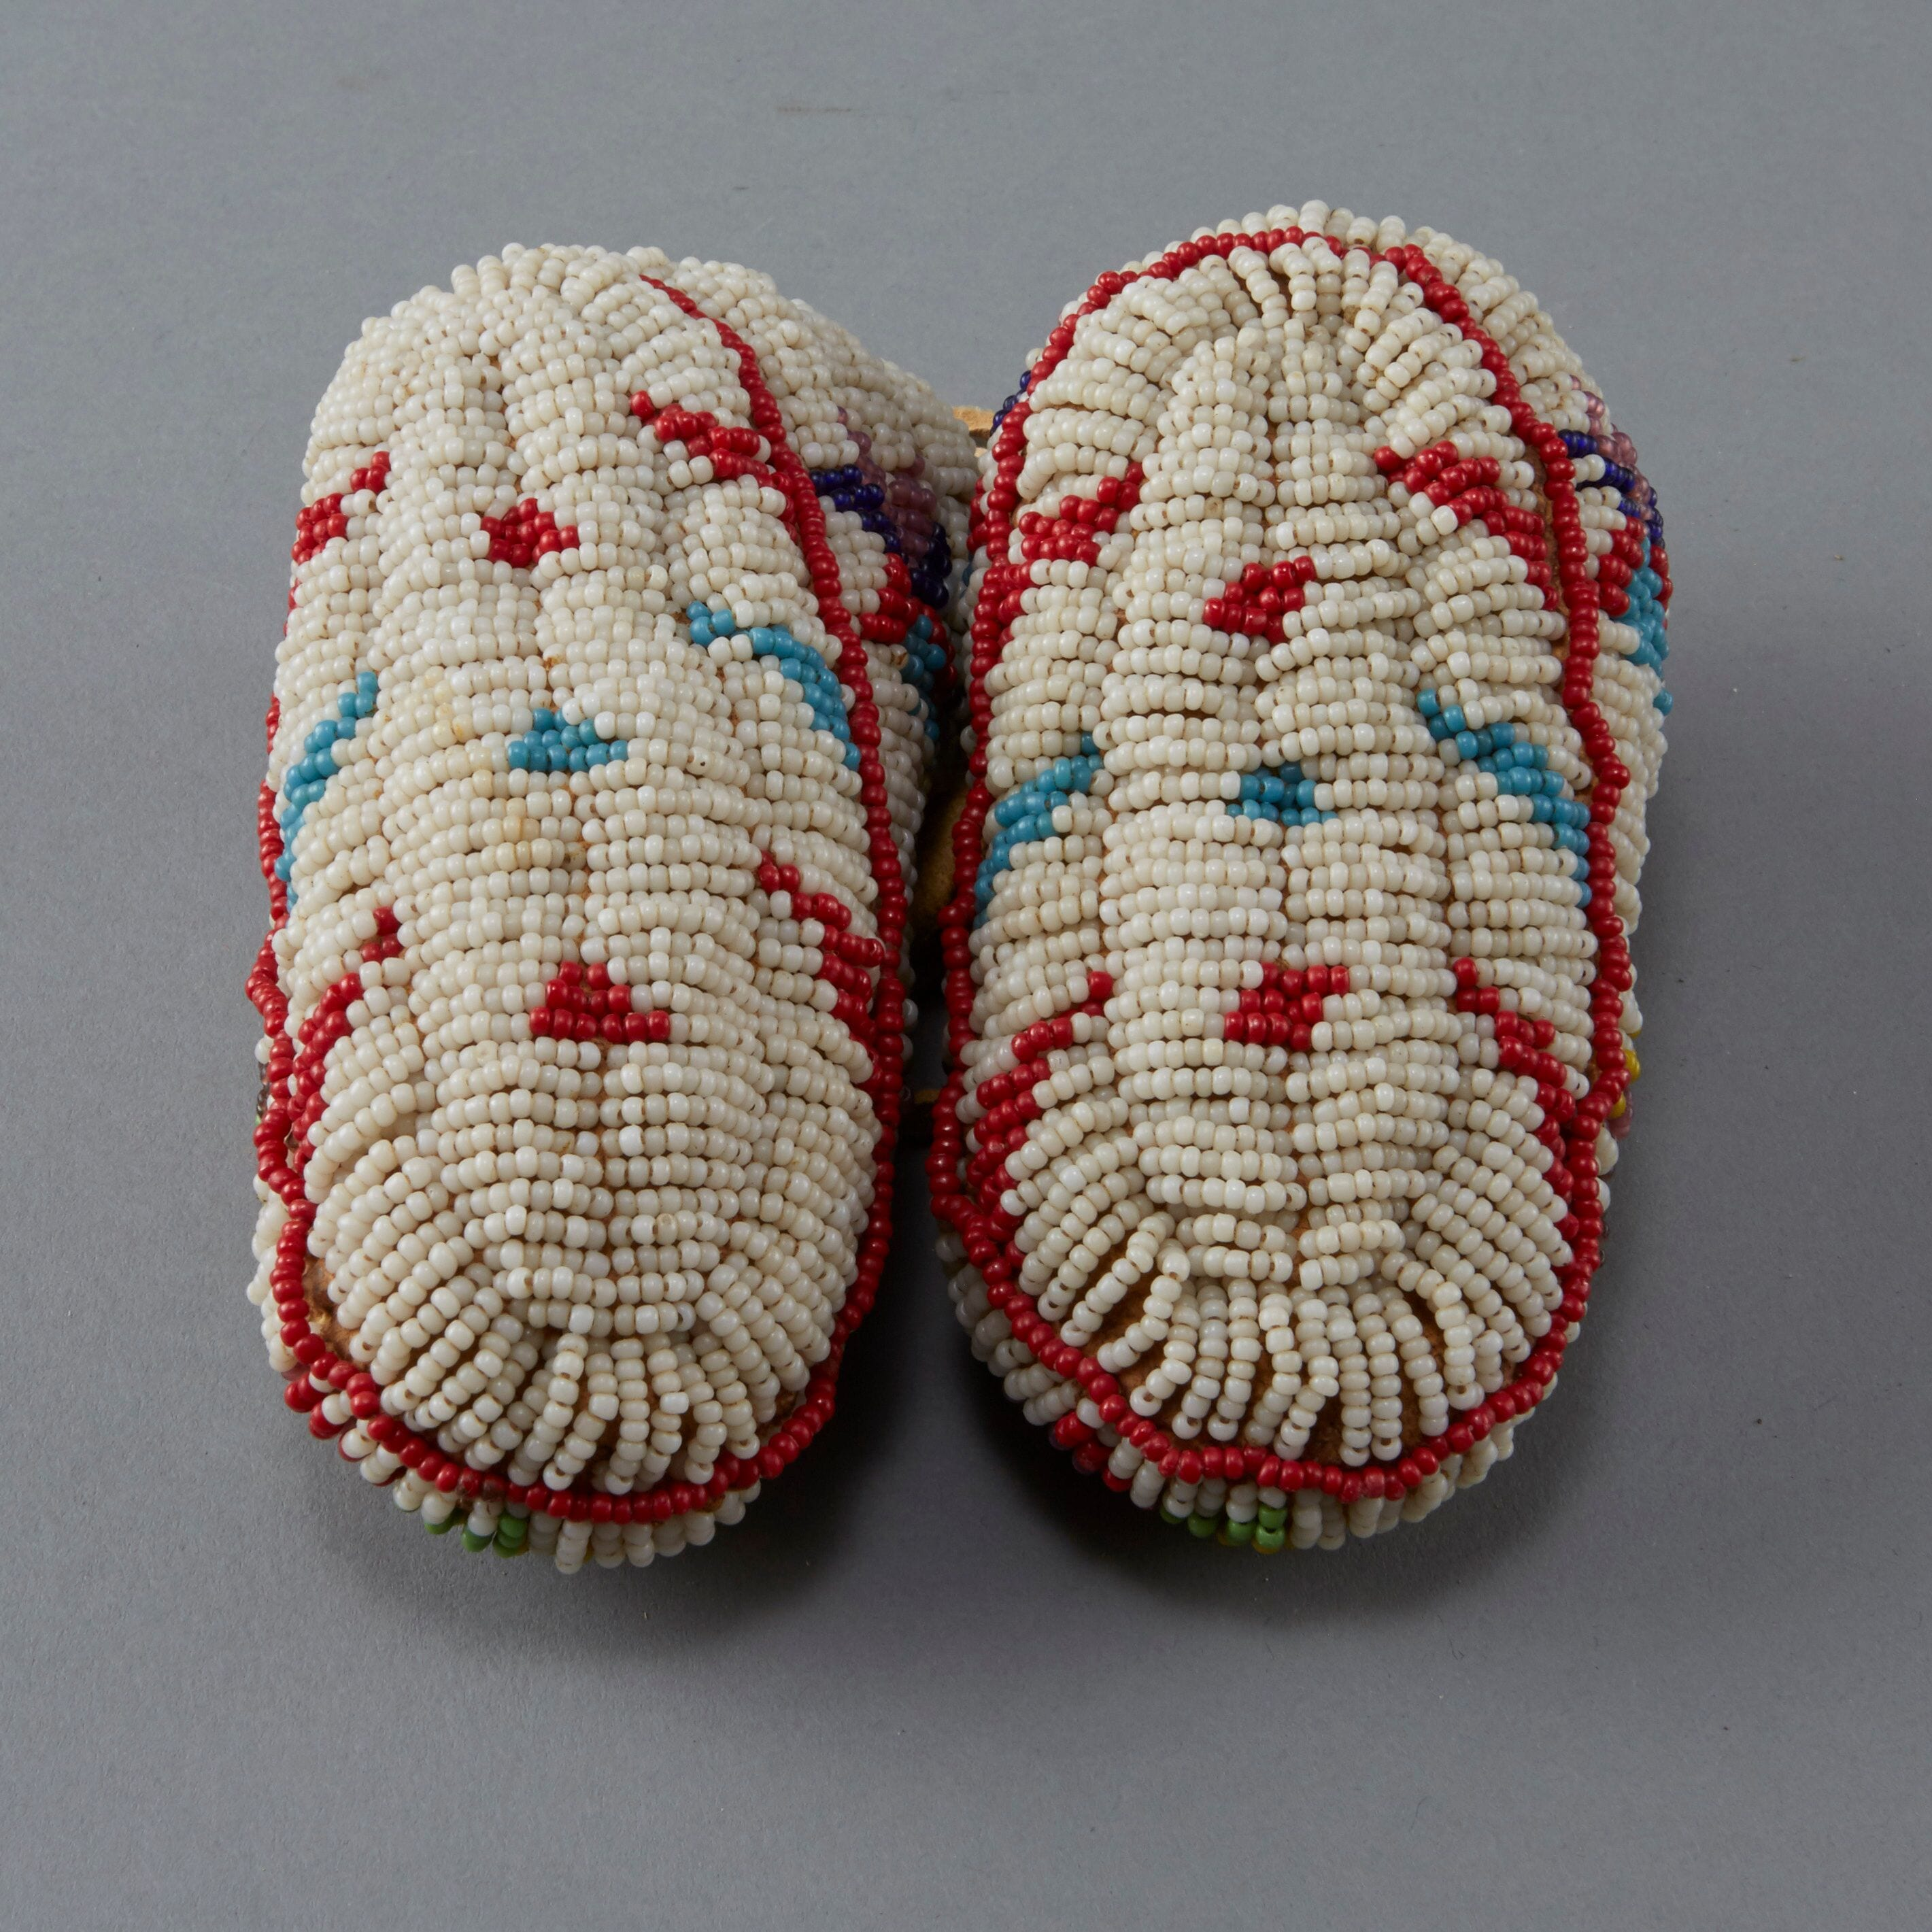 Lot 082: 10 Pairs Beaded Children's Moccasins